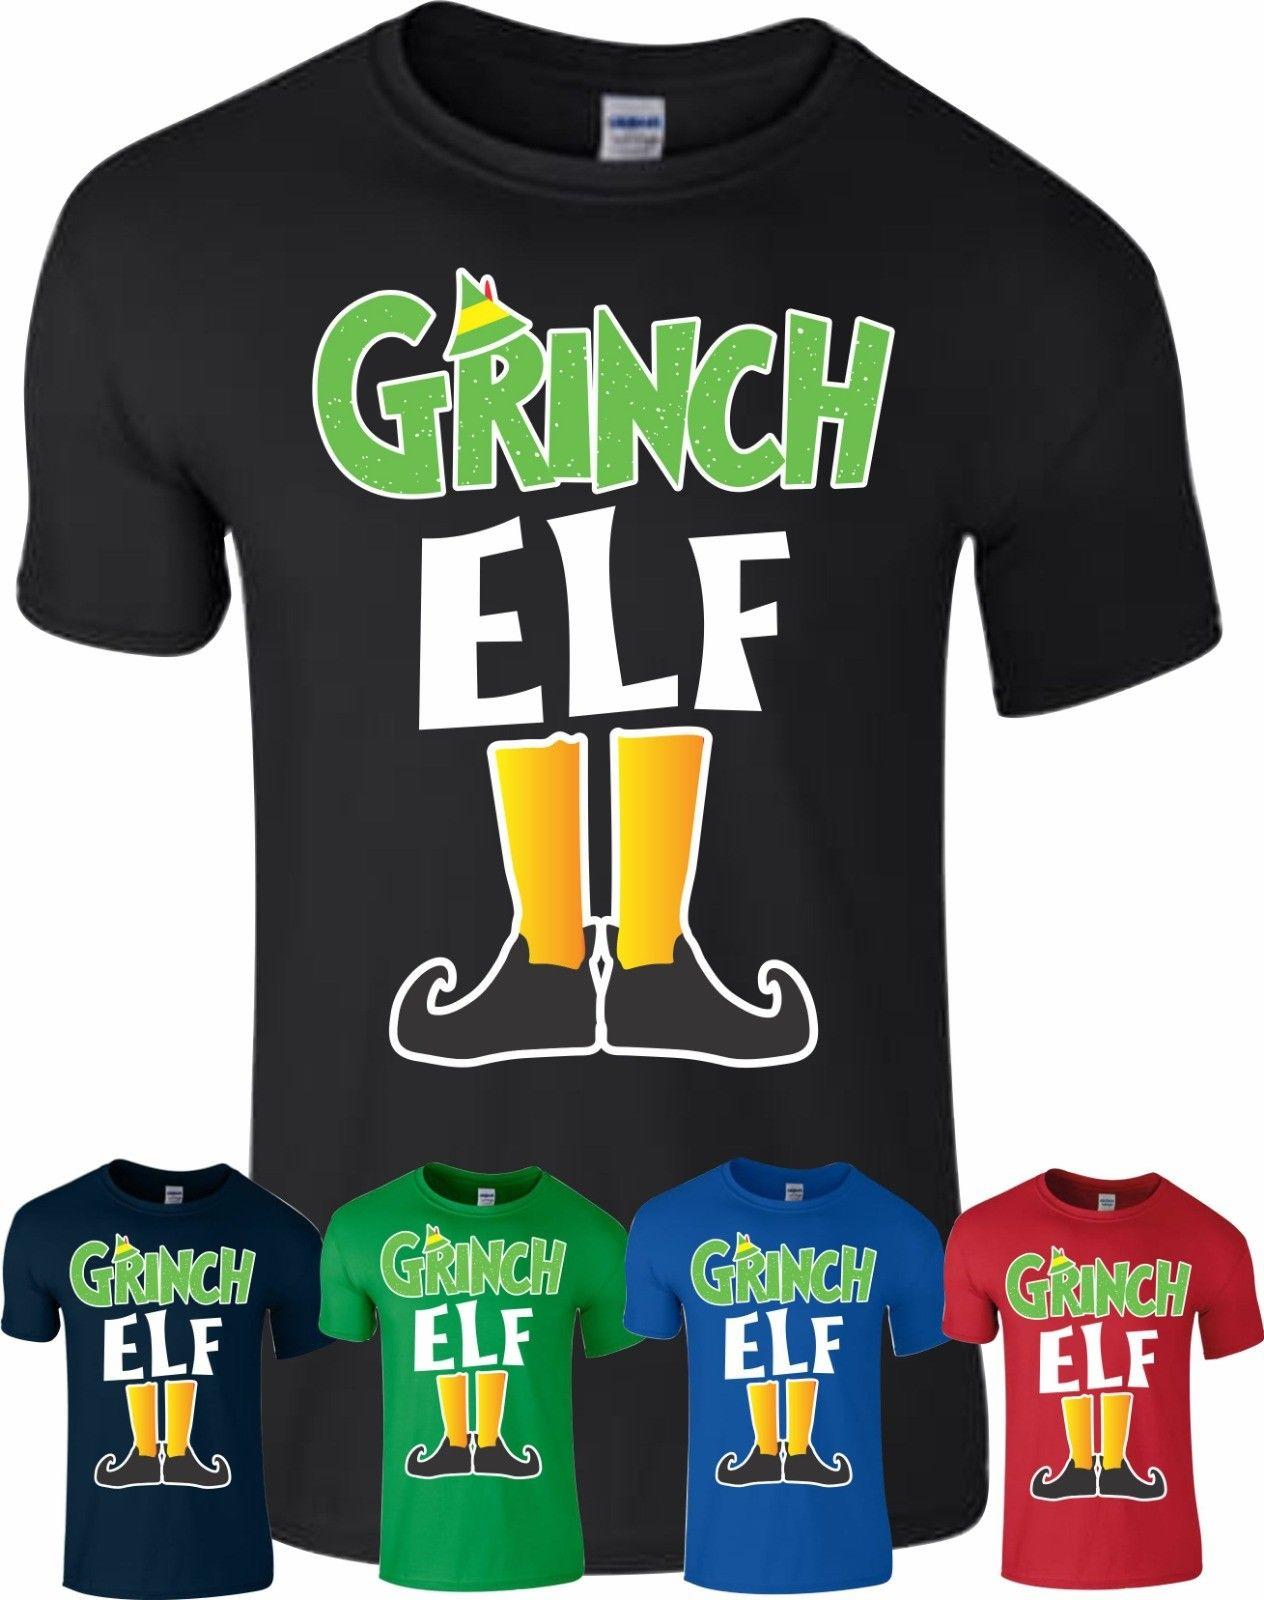 d176af830 Grinch Elf Christmas T Shirt Novelty Xmas Pyjama PJ'S Idea Kids Adult  Unisex Top Funny Unisex Casual Tee Gift Funny T Shirt Awesome T Shirts From  ...